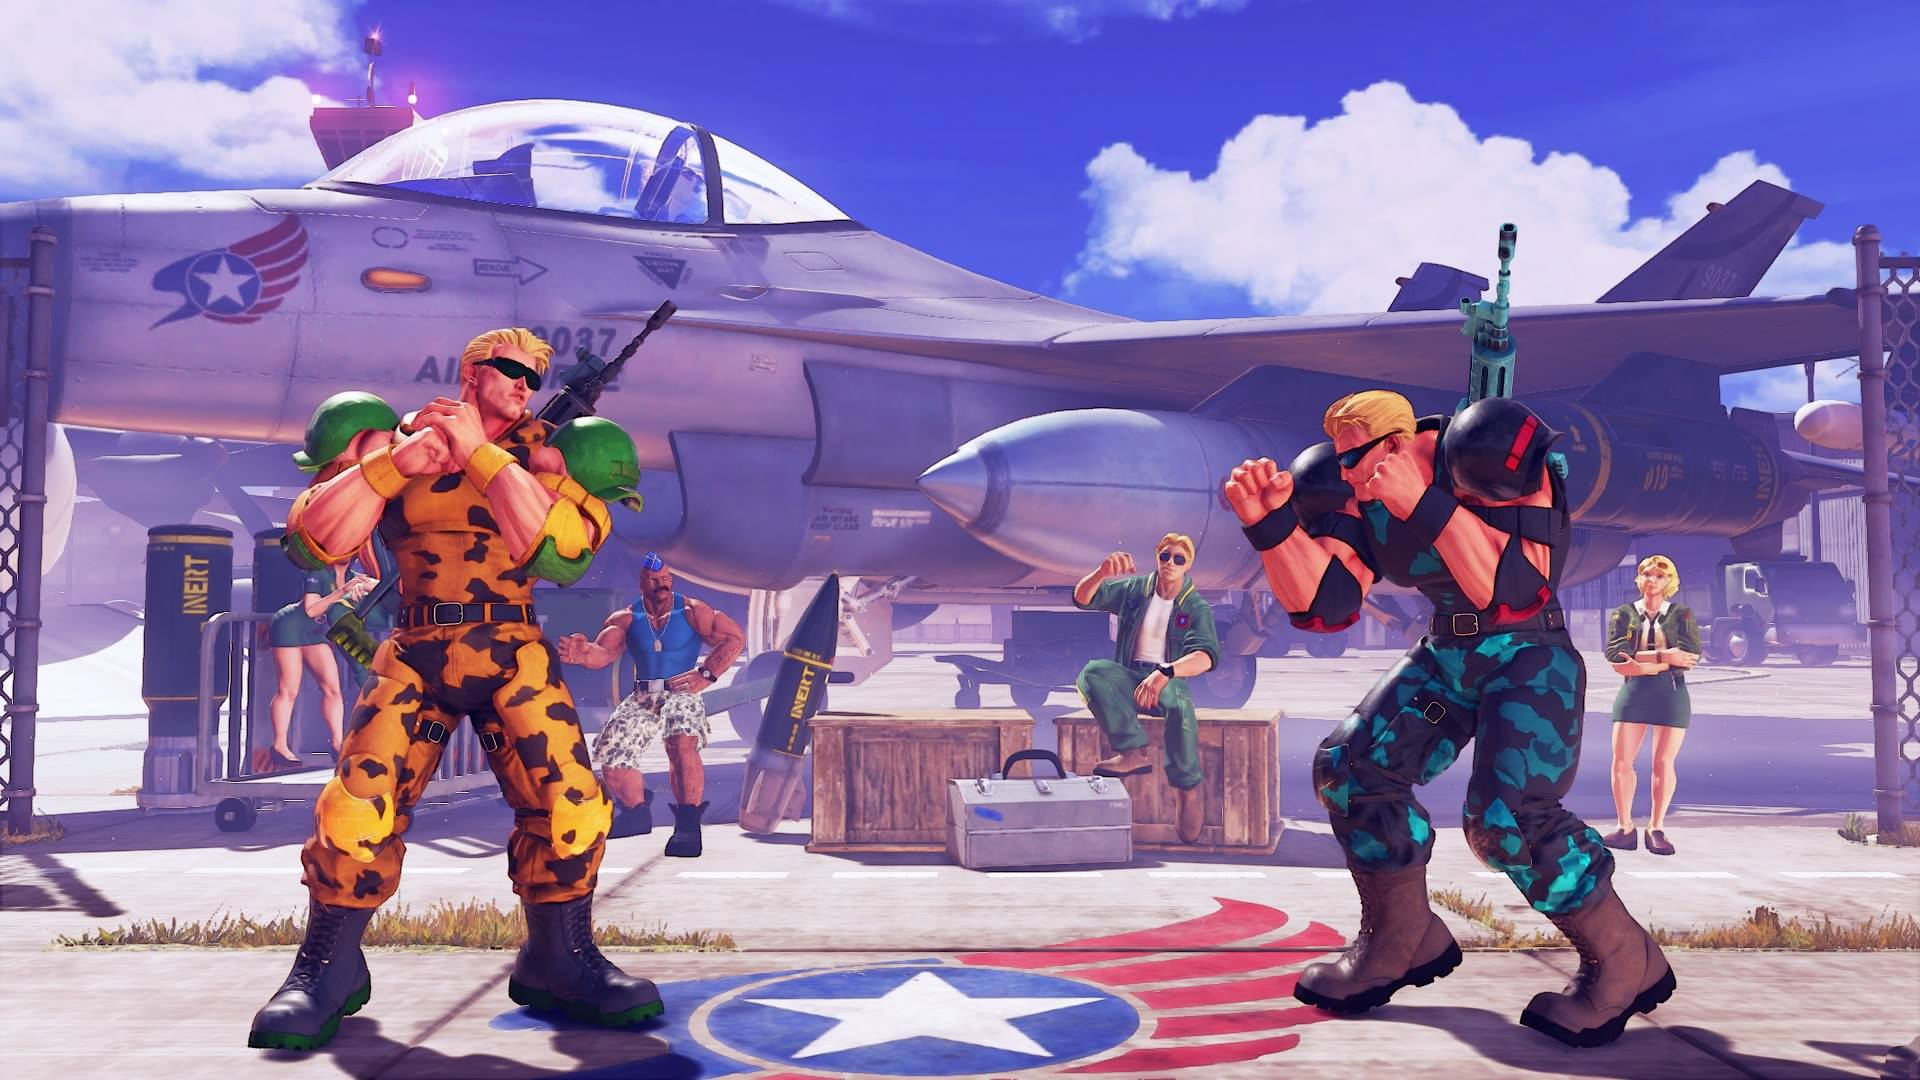 Guile's Nameless Solider colors 4 out of 5 image gallery